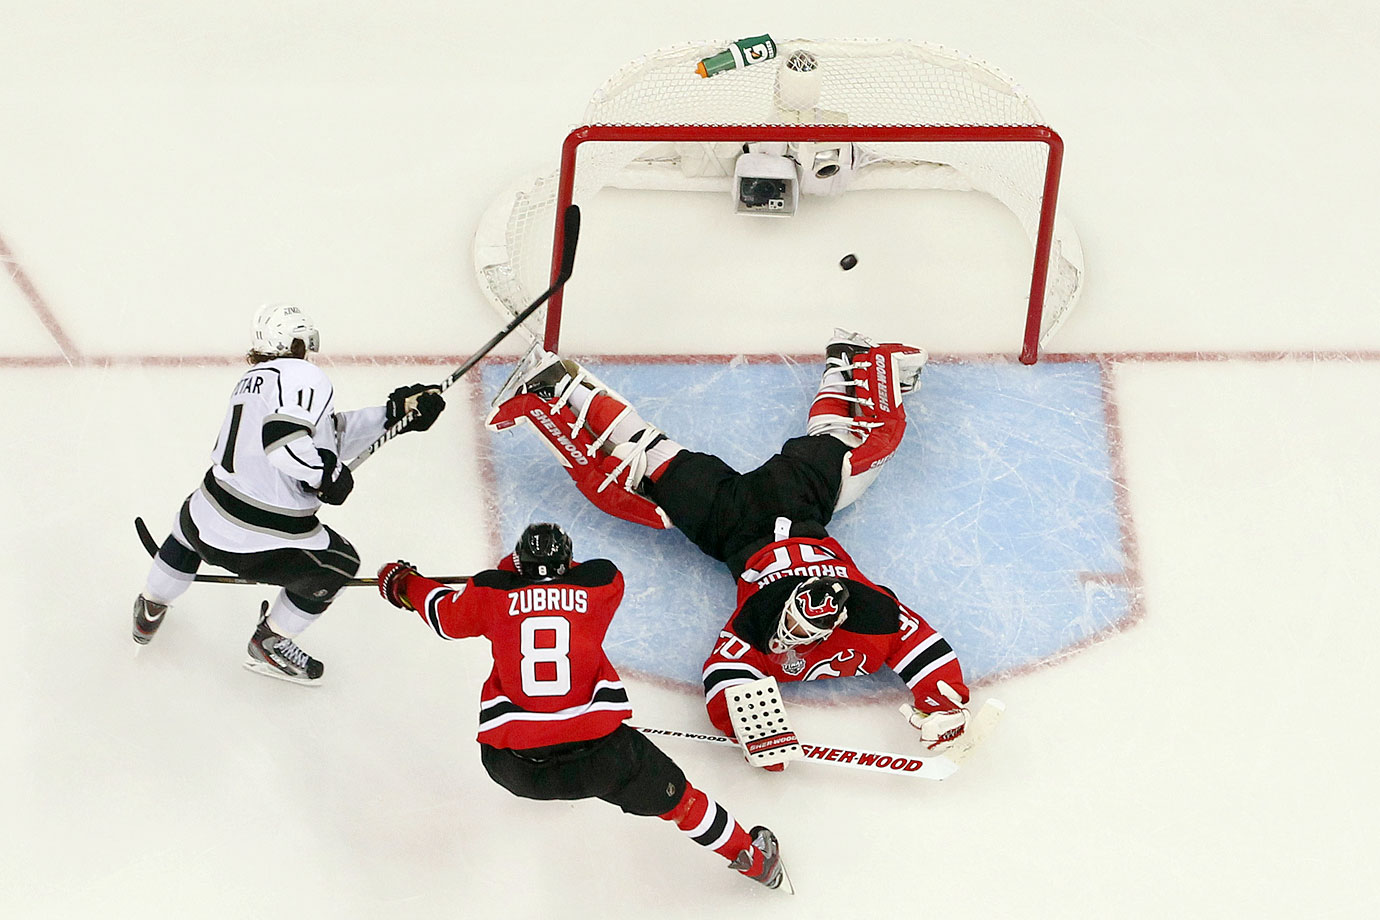 Three weeks after turning 40, Martin Brodeur, the Devils' franchise goaltender, took his team to the Cup final for the fifth time in his career. But in Game 1 at New Jersey's Prudential Center, Kings center Anze Kopitar got the upper hand, scoring the overtime winner against him. The Kings went on to win the Cup, four games to two.